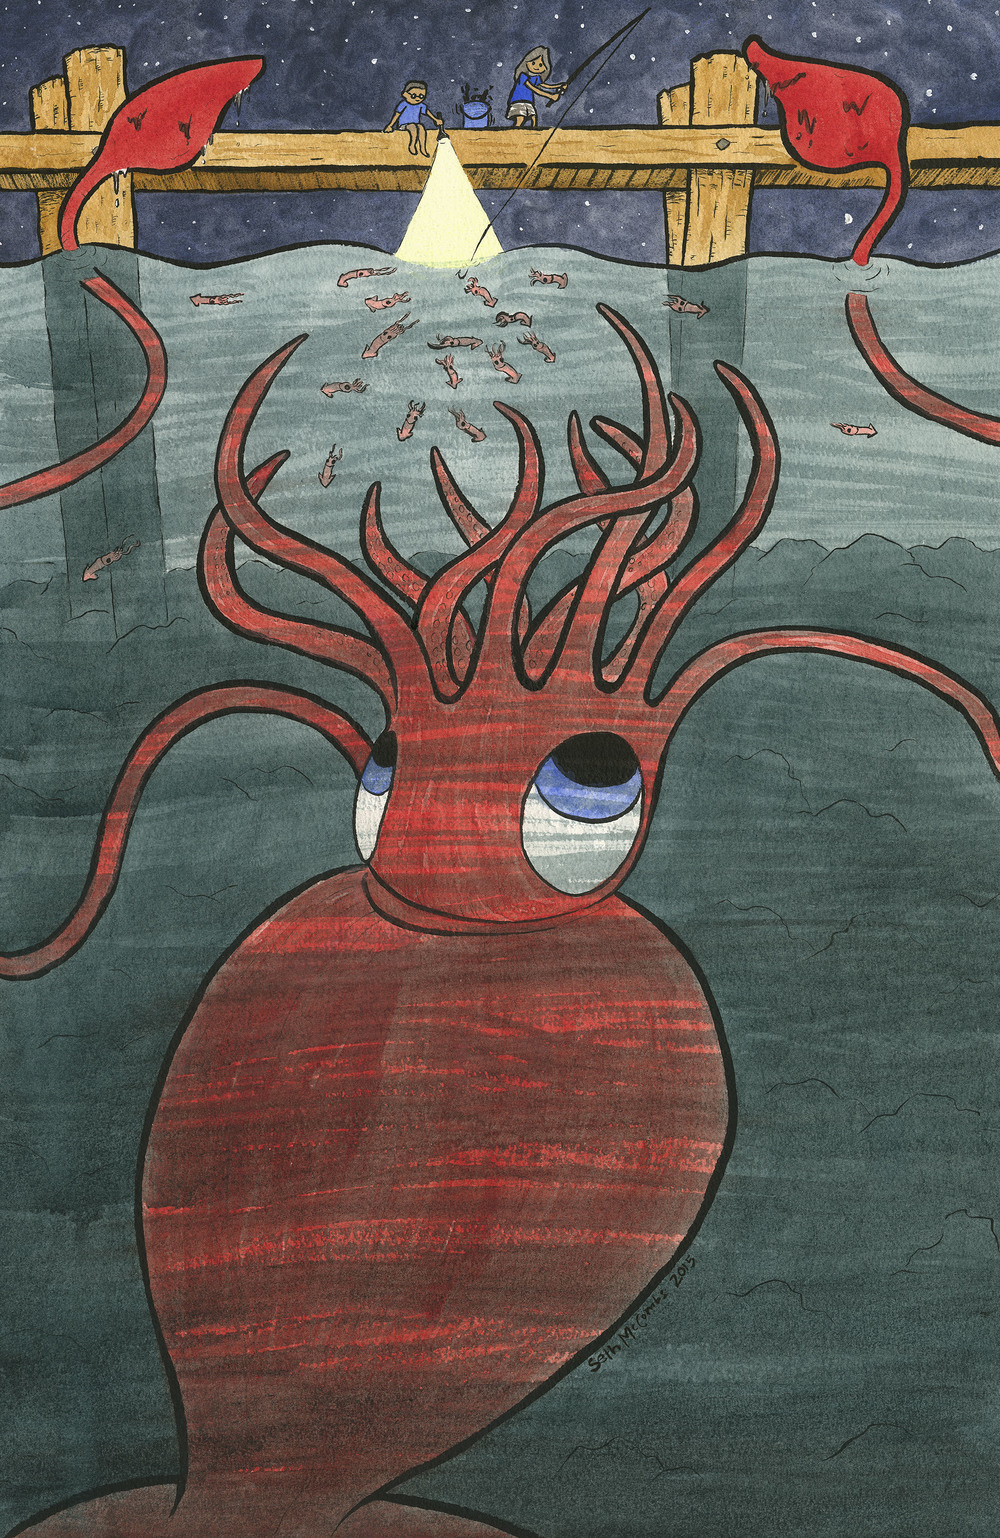 What's Down There?  Colossal Squid!